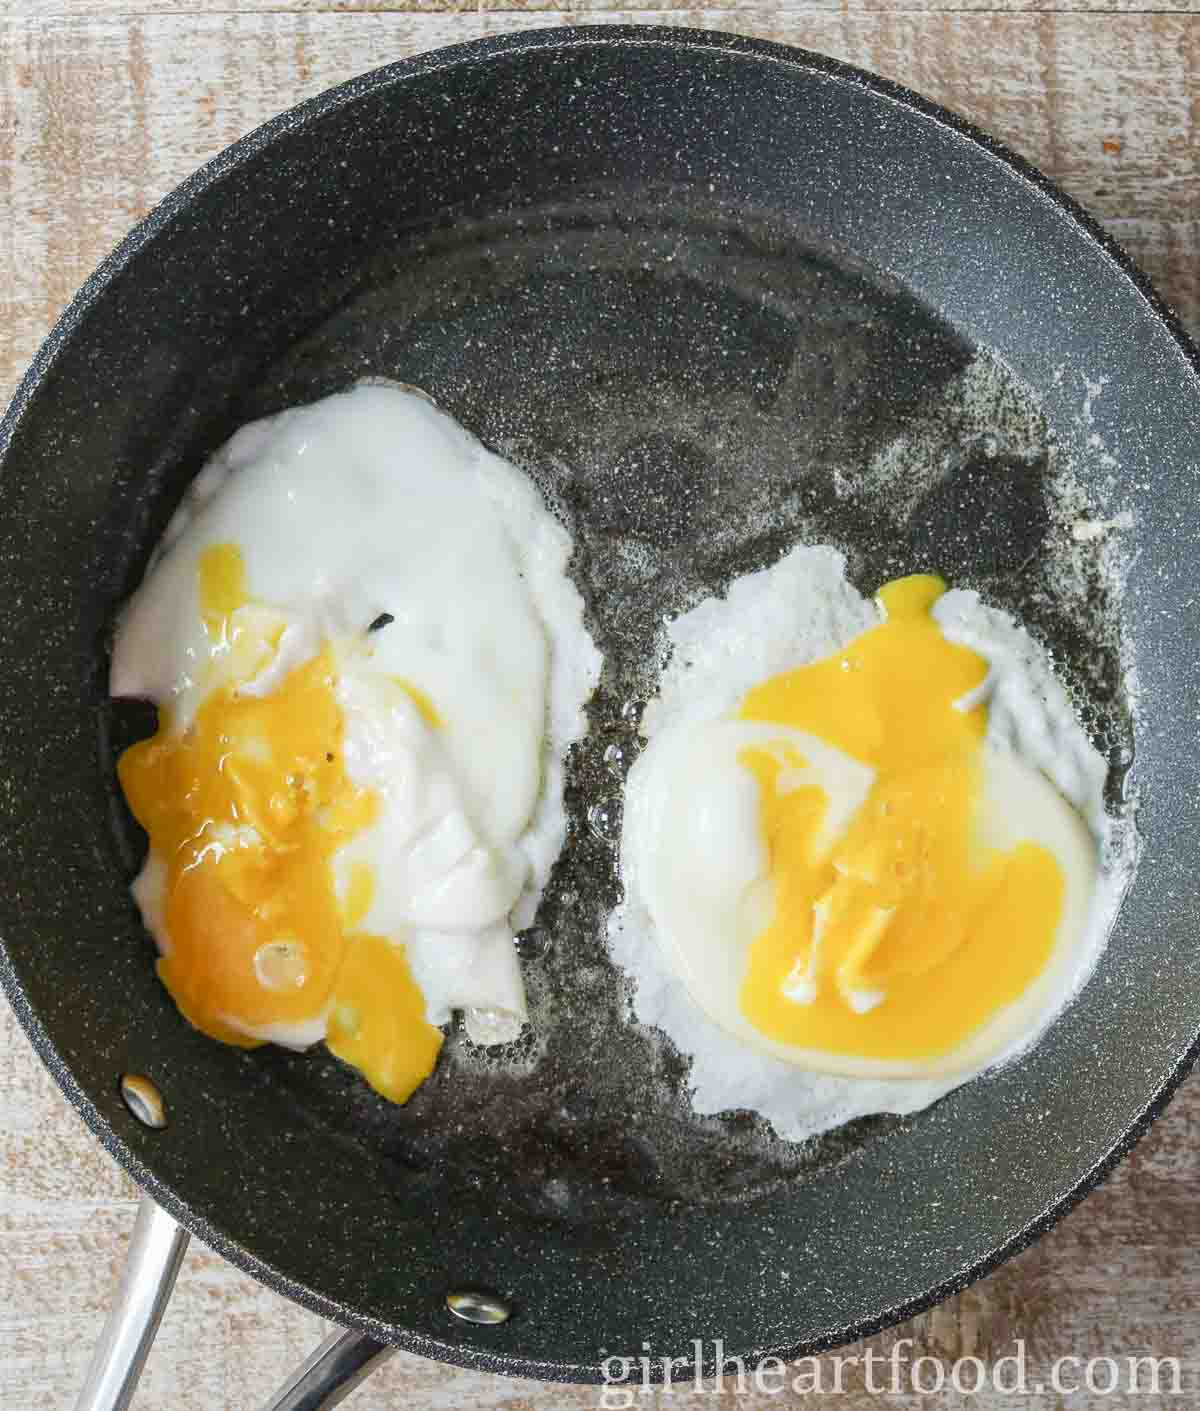 Two eggs frying in a non stick pan with the yolks broke.